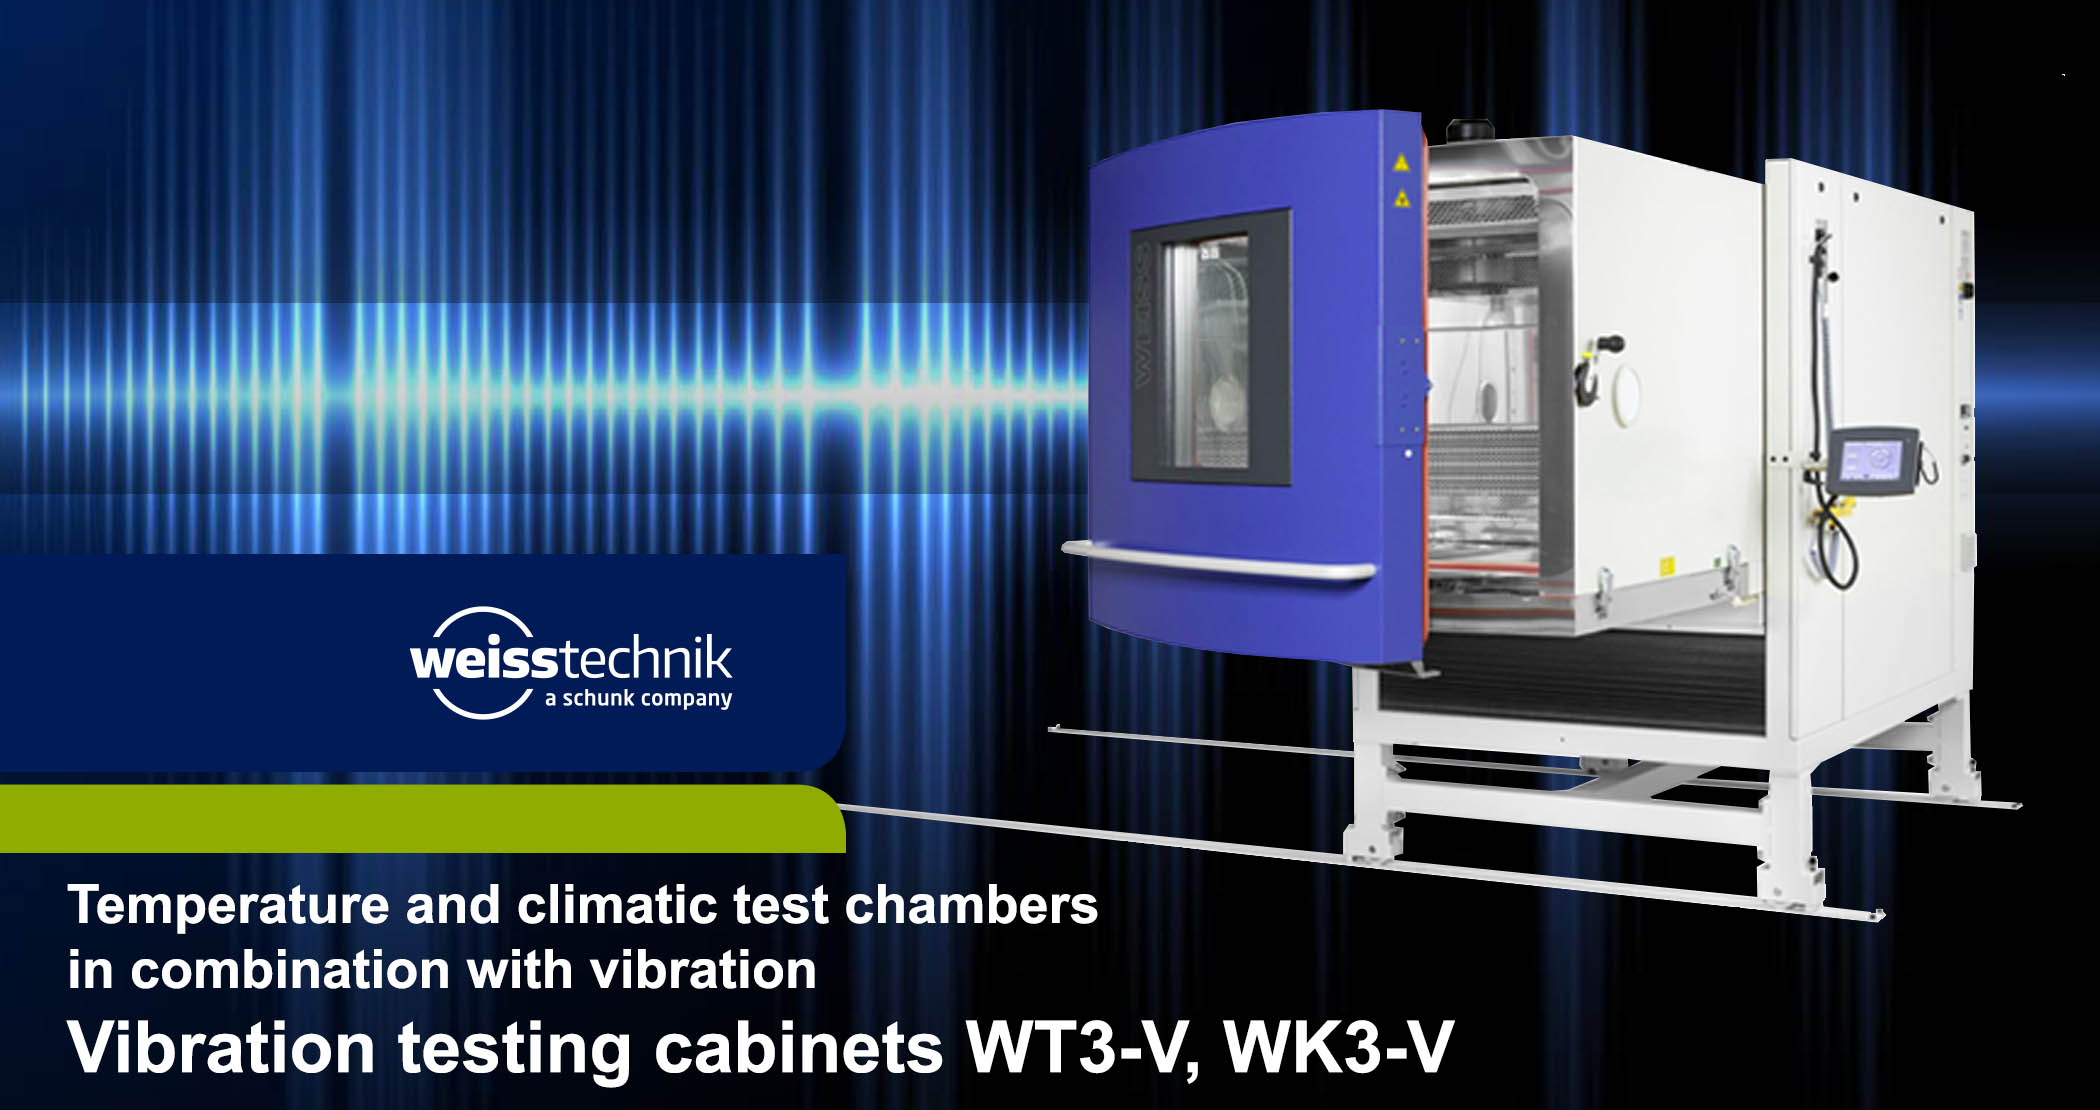 Vibration testing cabinets, WT3-V, WK3-V, Weiss